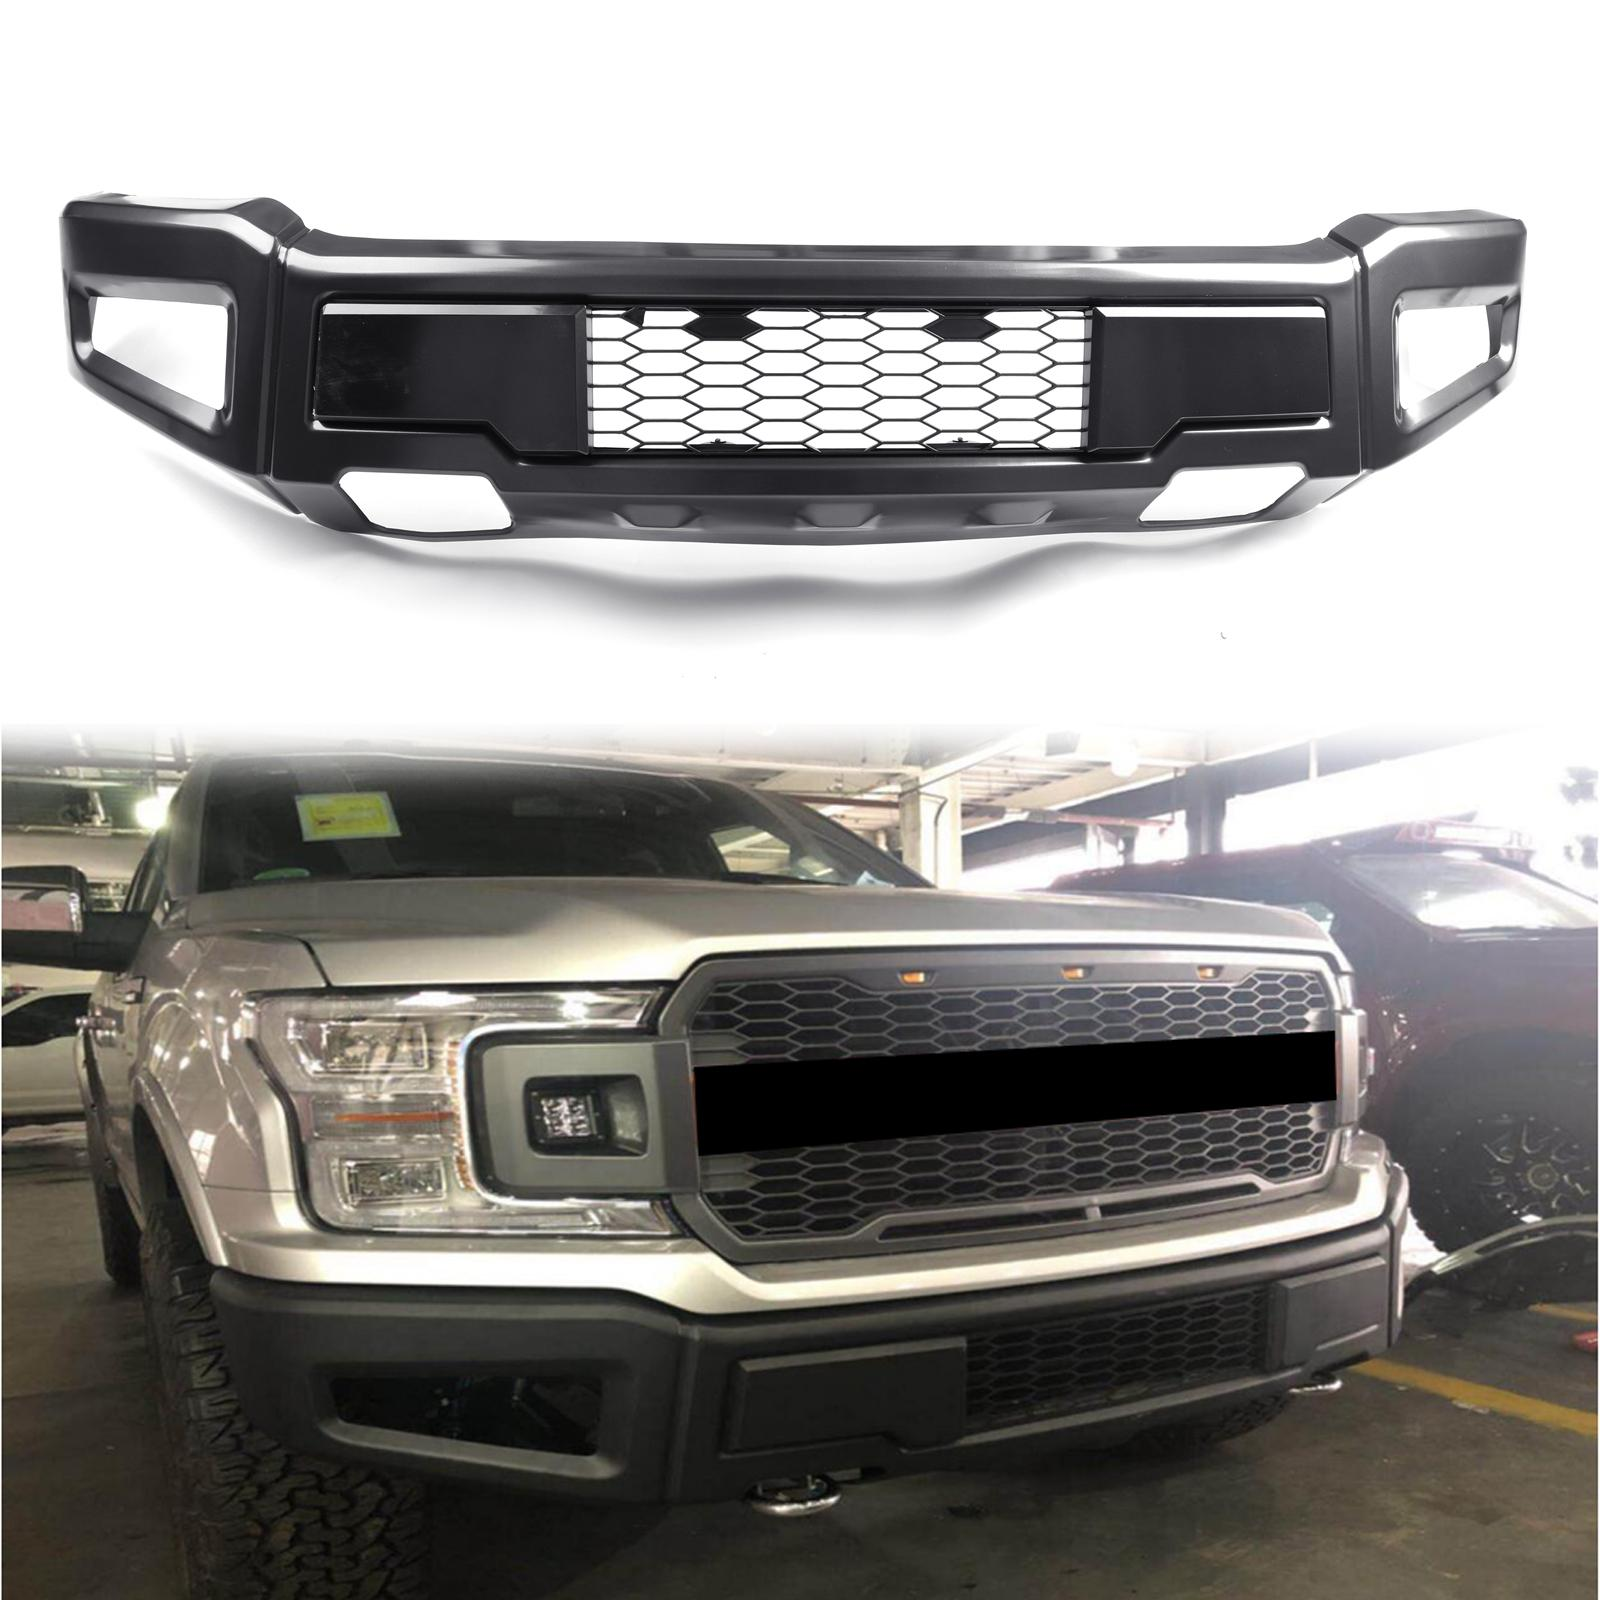 2020 Areyourshop Raptor Style Front Bumper Assembly Kit For Ford F 150 2018 2019 Front Bumper